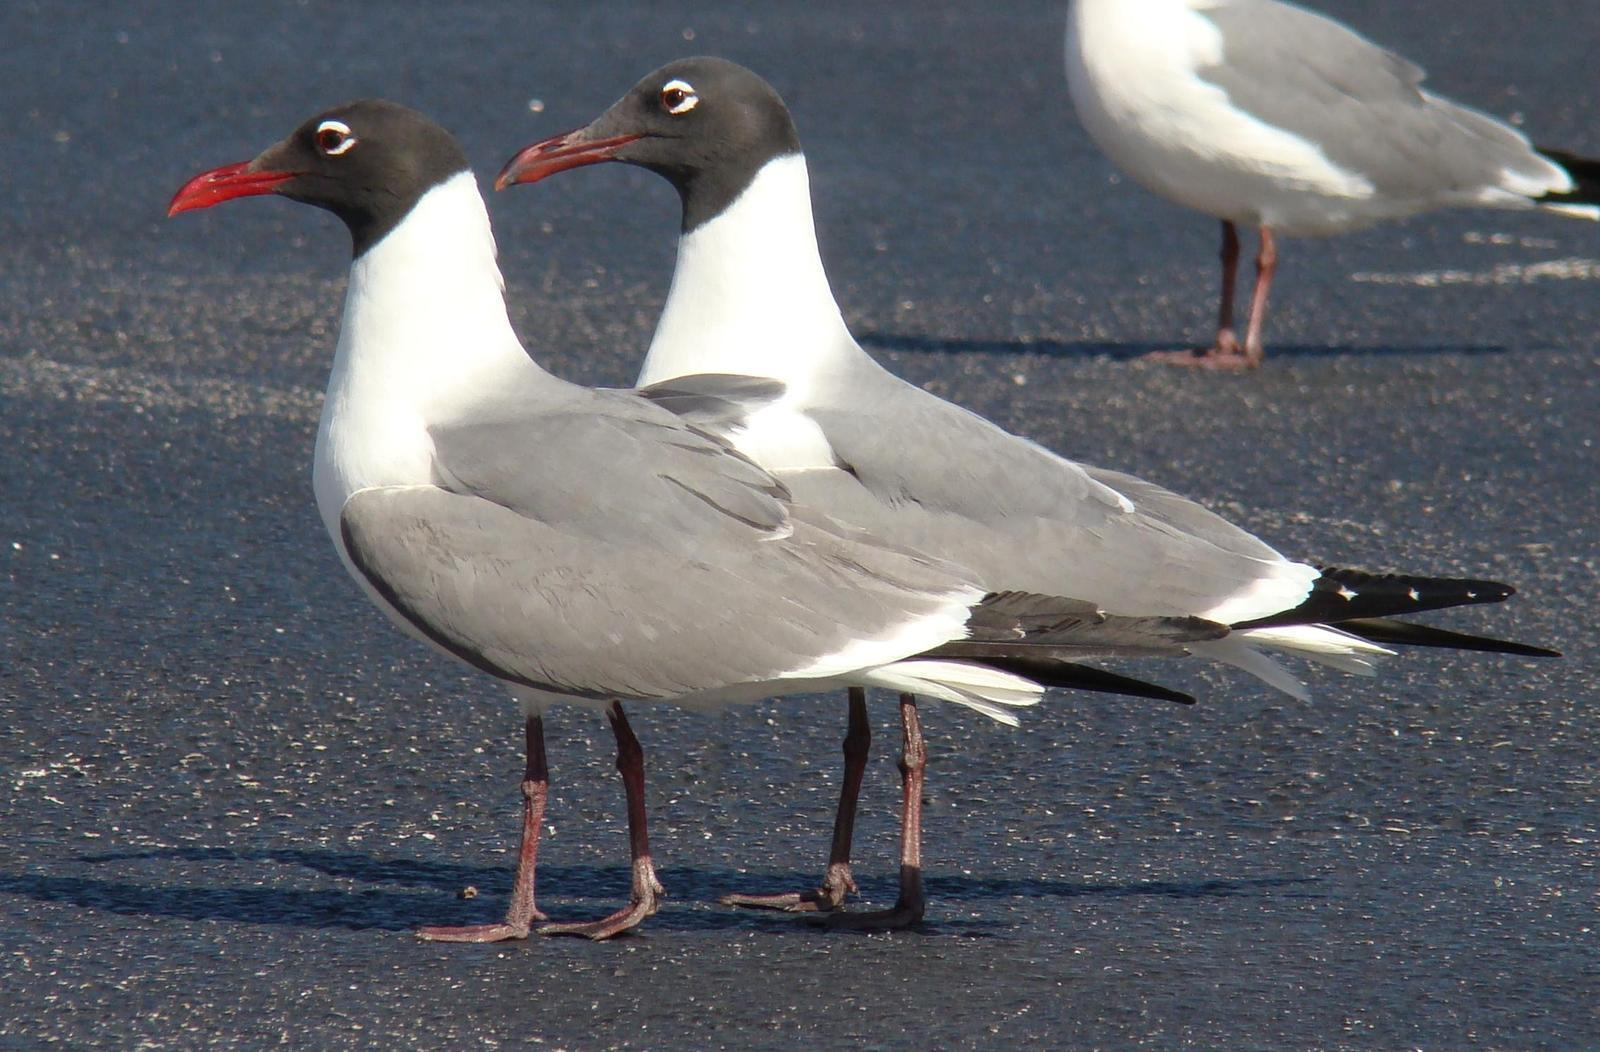 Laughing Gull Photo by Bob Heitzman